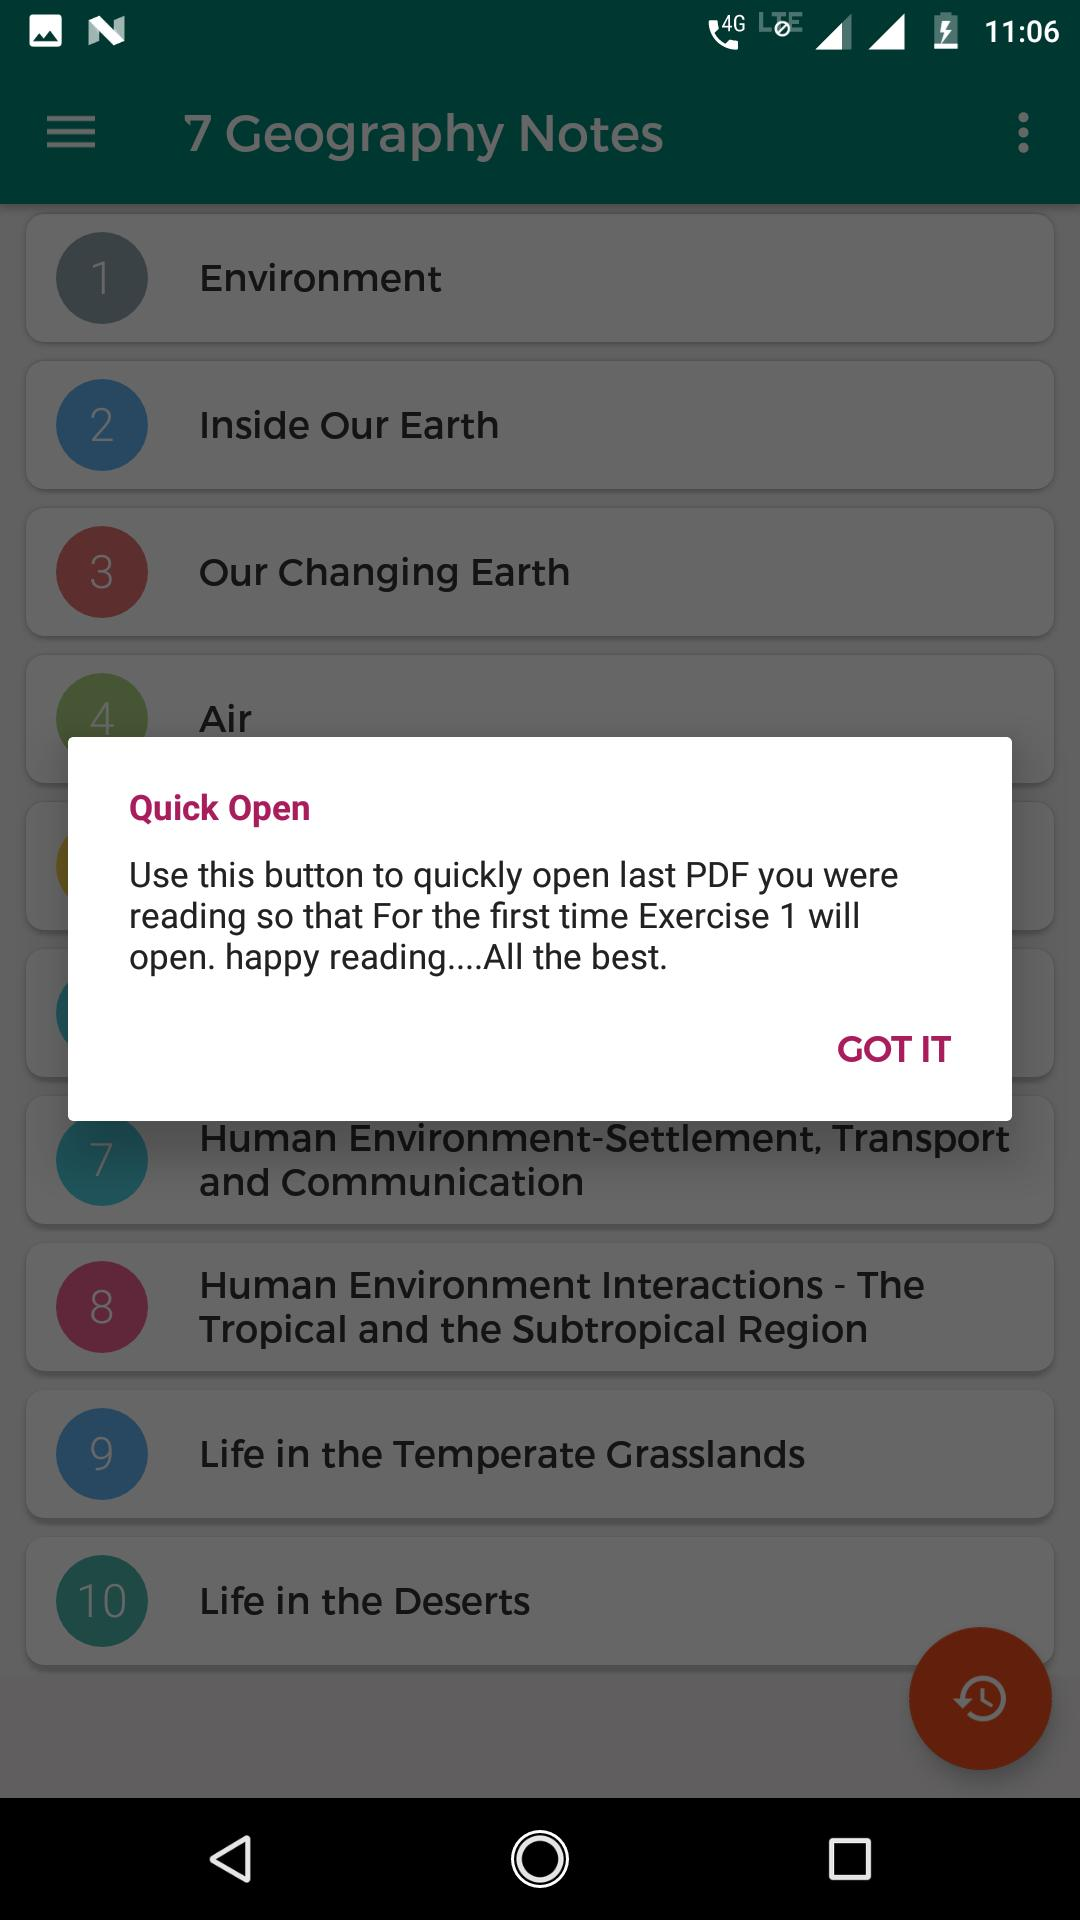 7th NCERT Geography Notes for Android - APK Download